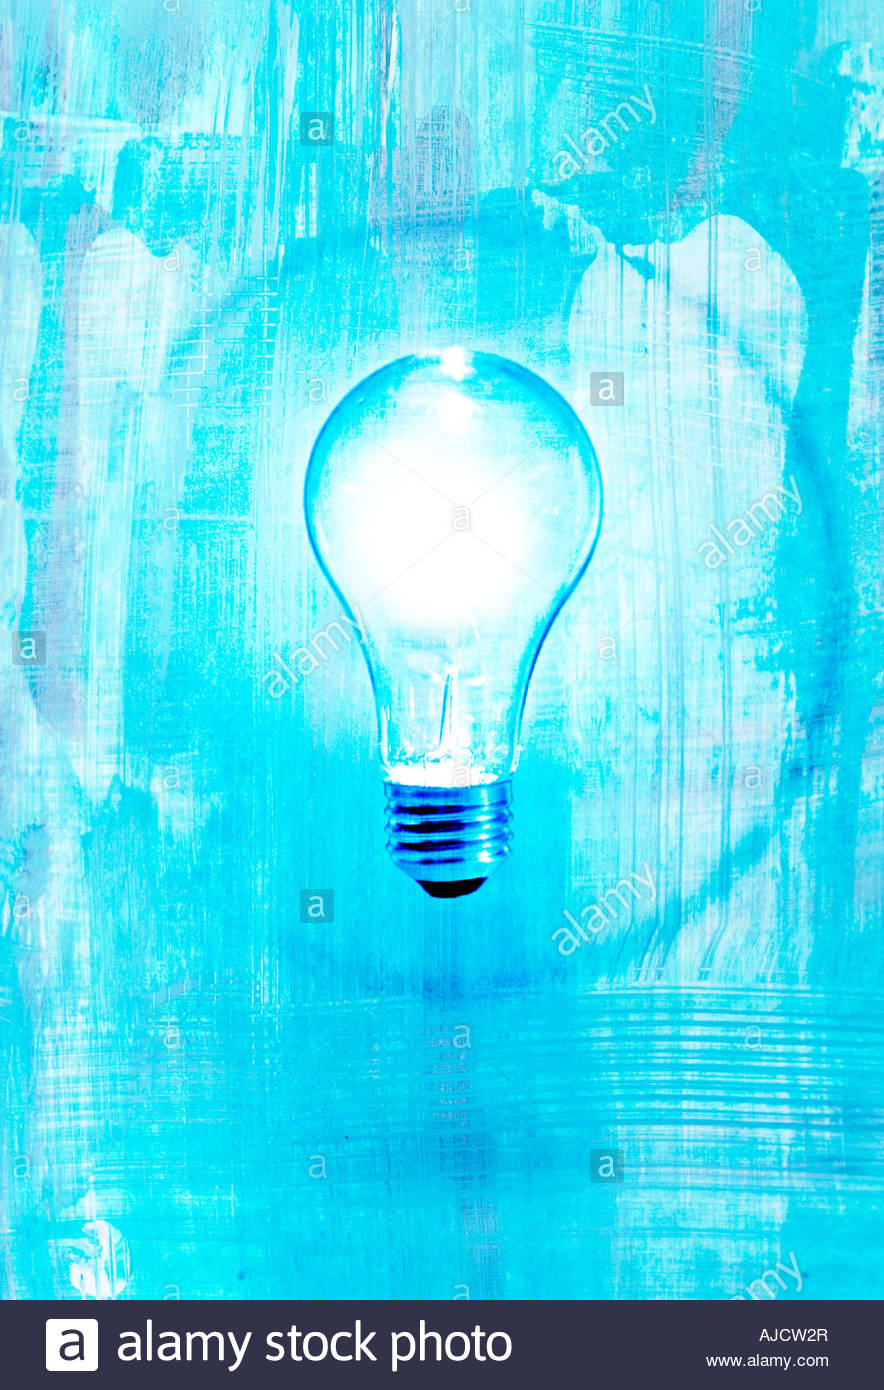 bright light bulb with blue background and circle showing idea or 884x1390